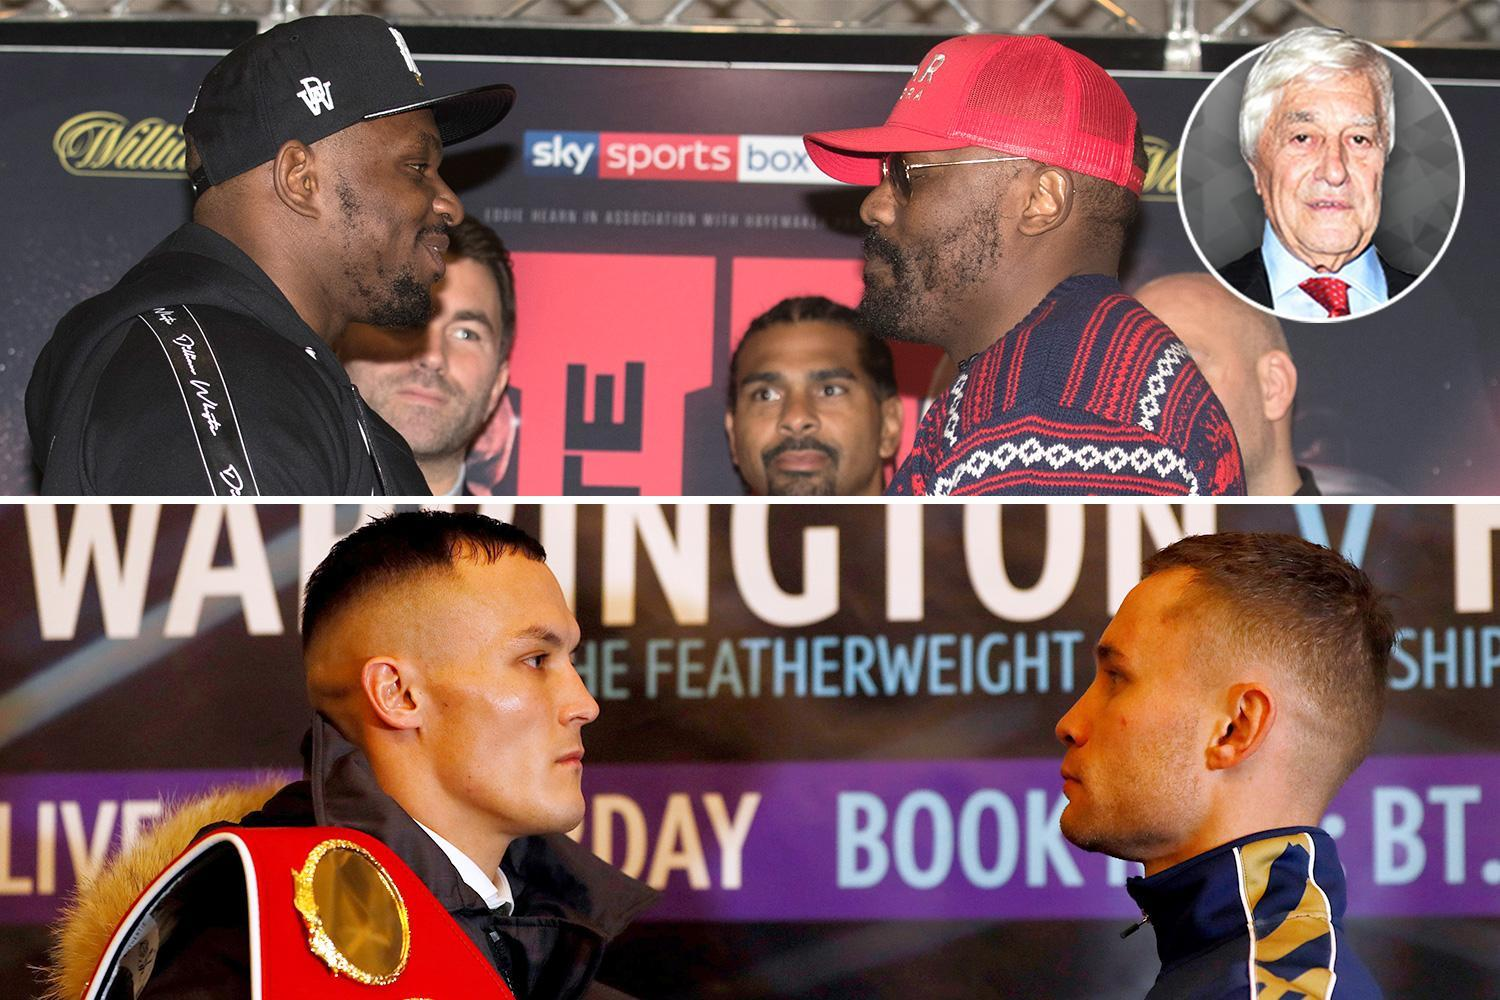 Warrington vs Frampton and Whyte vs Chisora on same night is low blow for boxing